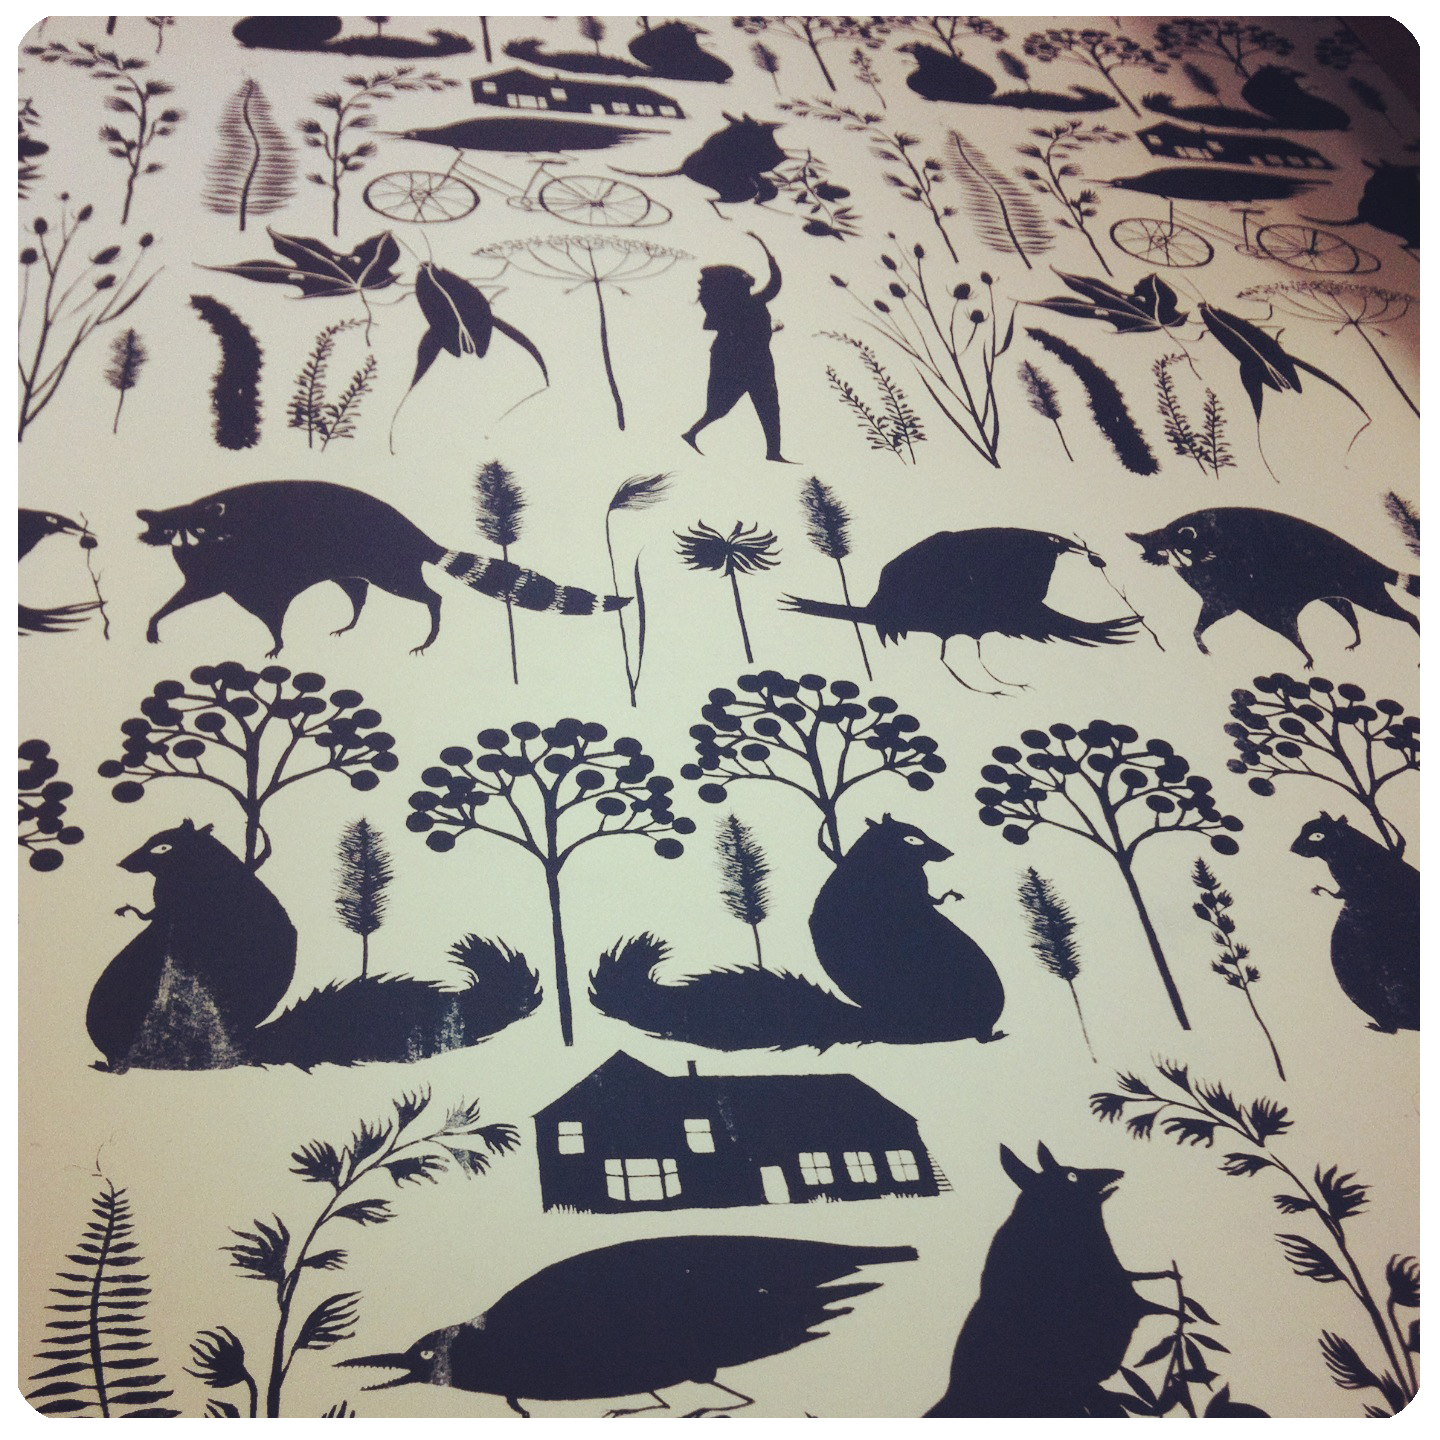 Zosia Gibbs, Print, Silkscreen Pattern, Animals, Raccoon, Squirrel, Crow, Artist in Residents